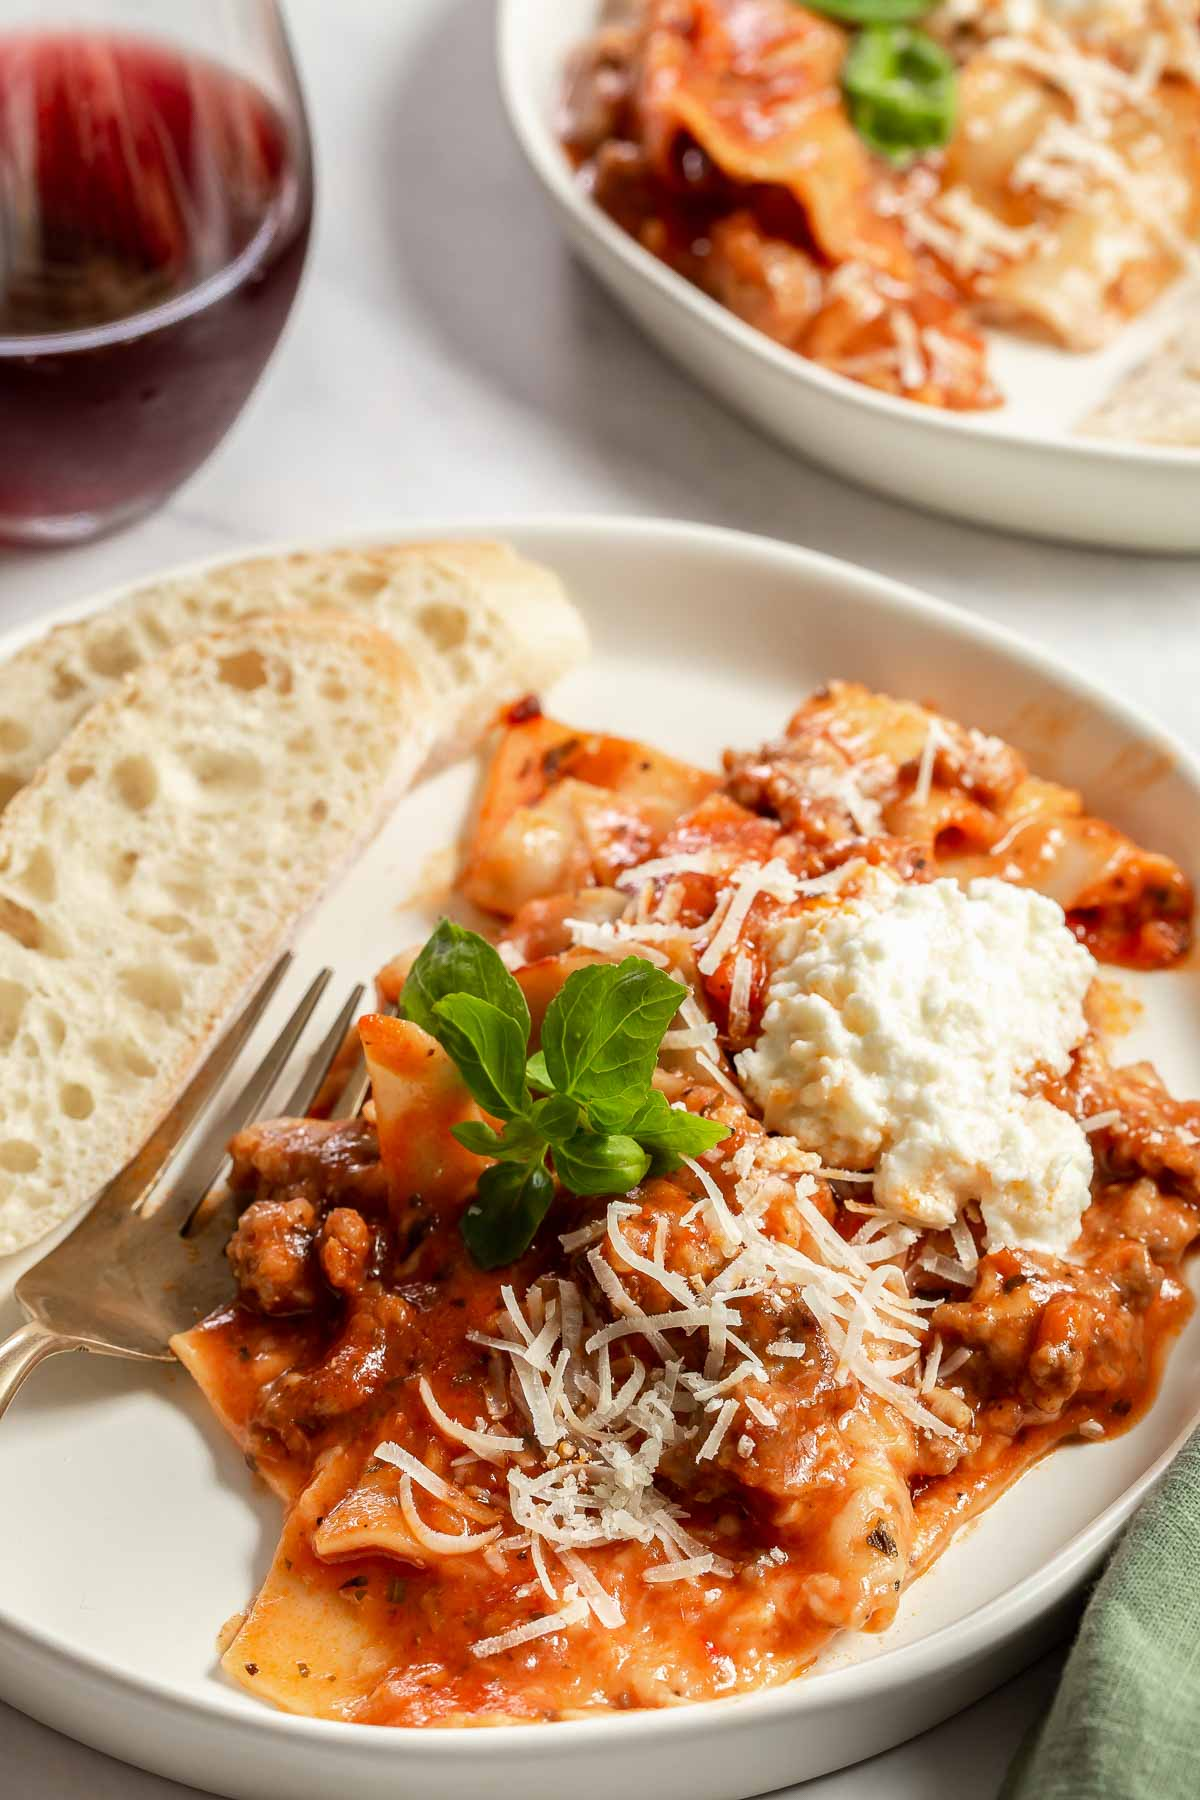 Serving of lasagna on white plate with bread.